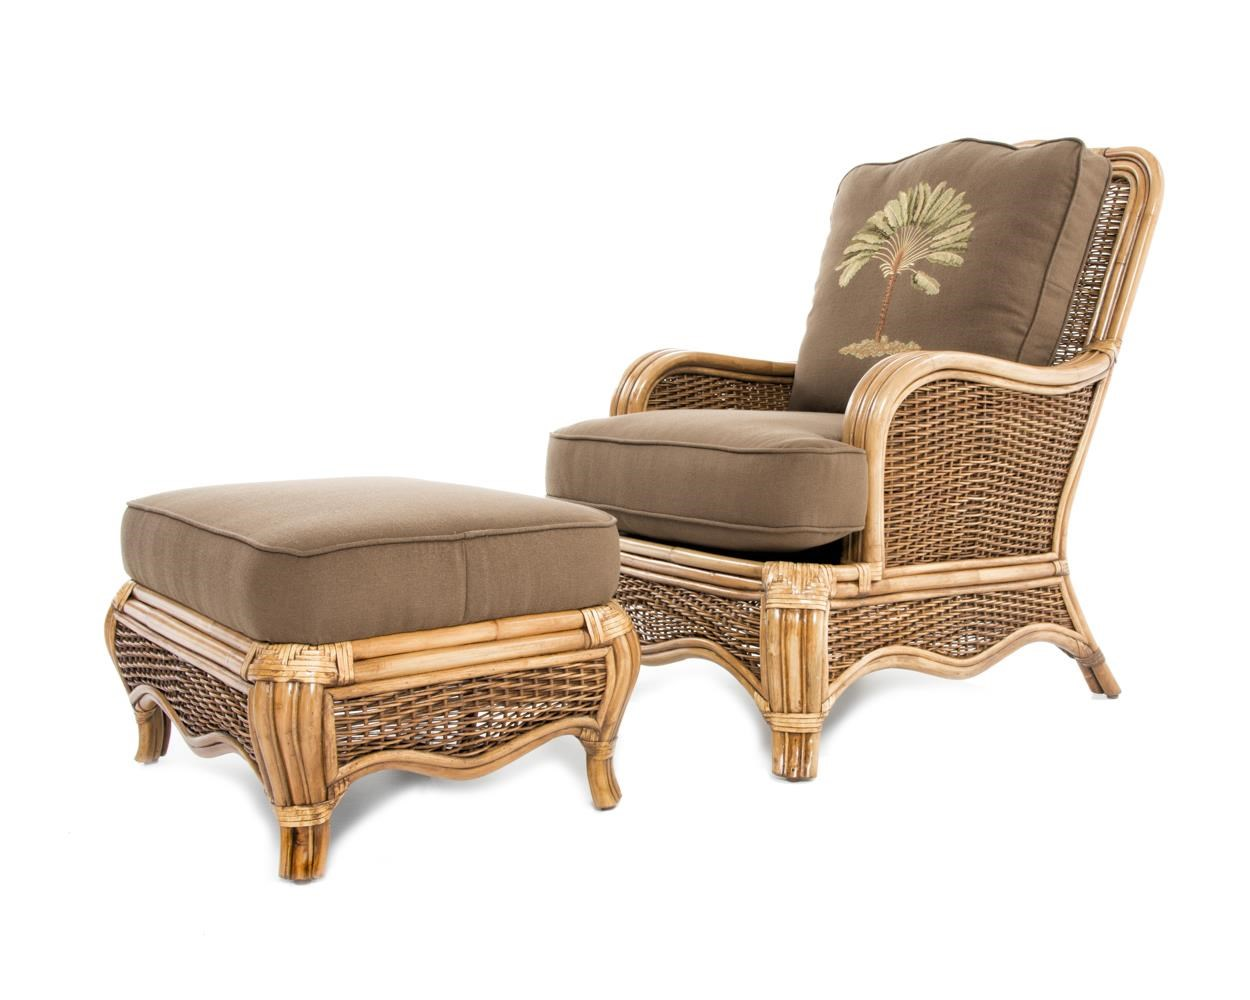 braxton sofa table where to place in living room as per vastu culler shorewood tropical rattan chair and ottoman